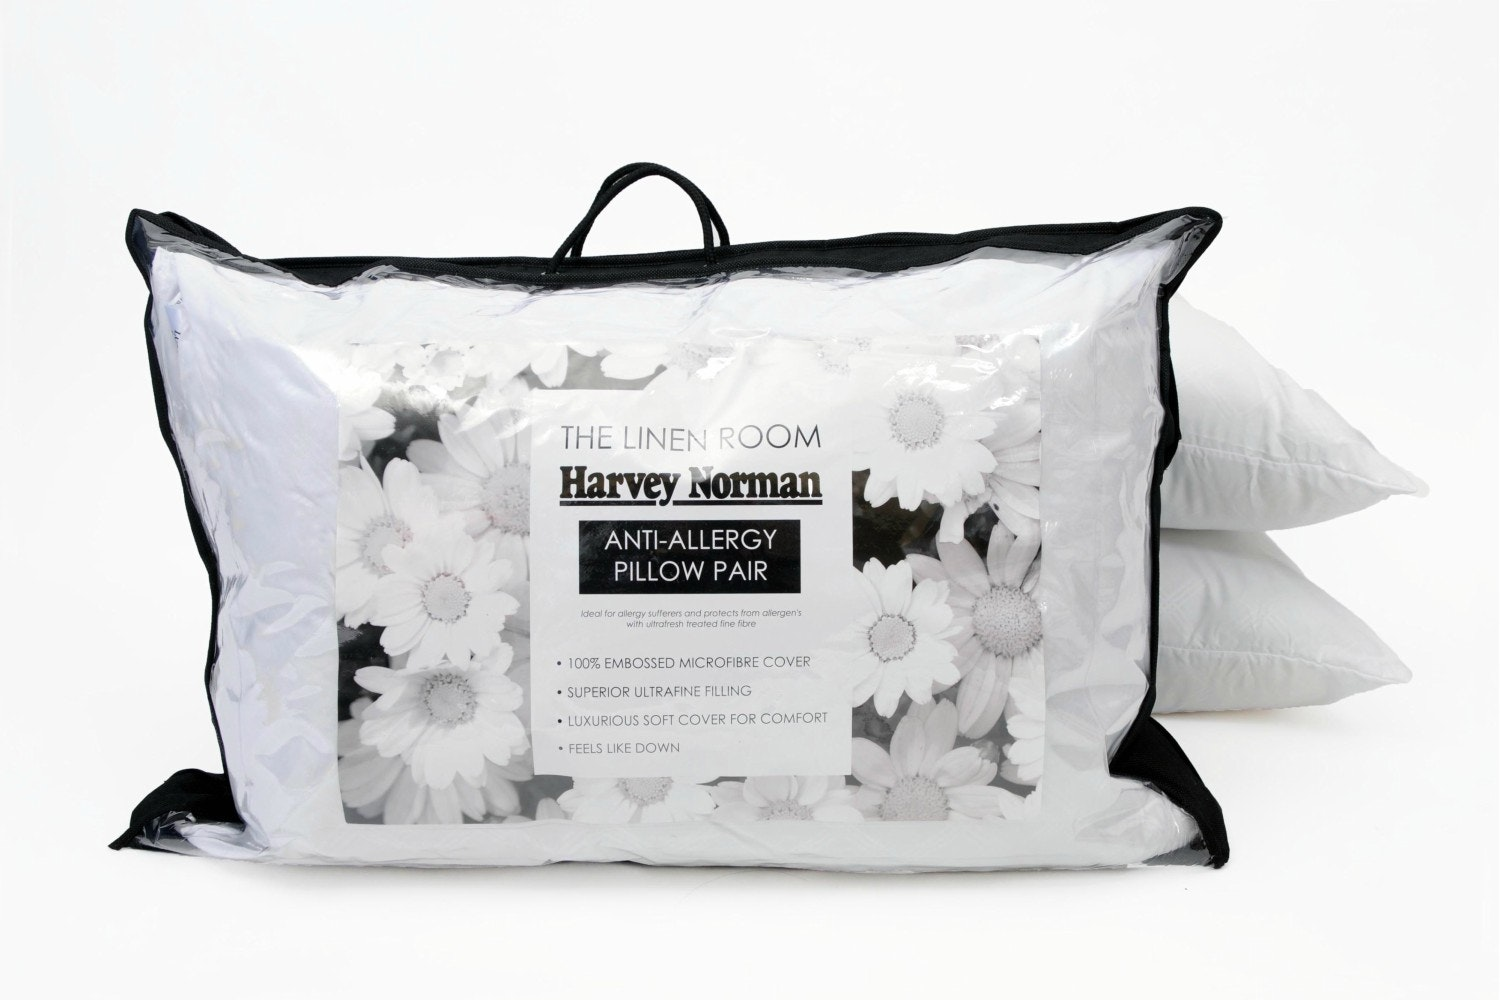 The Linen Room  Anti - Allergy Pillow Pair